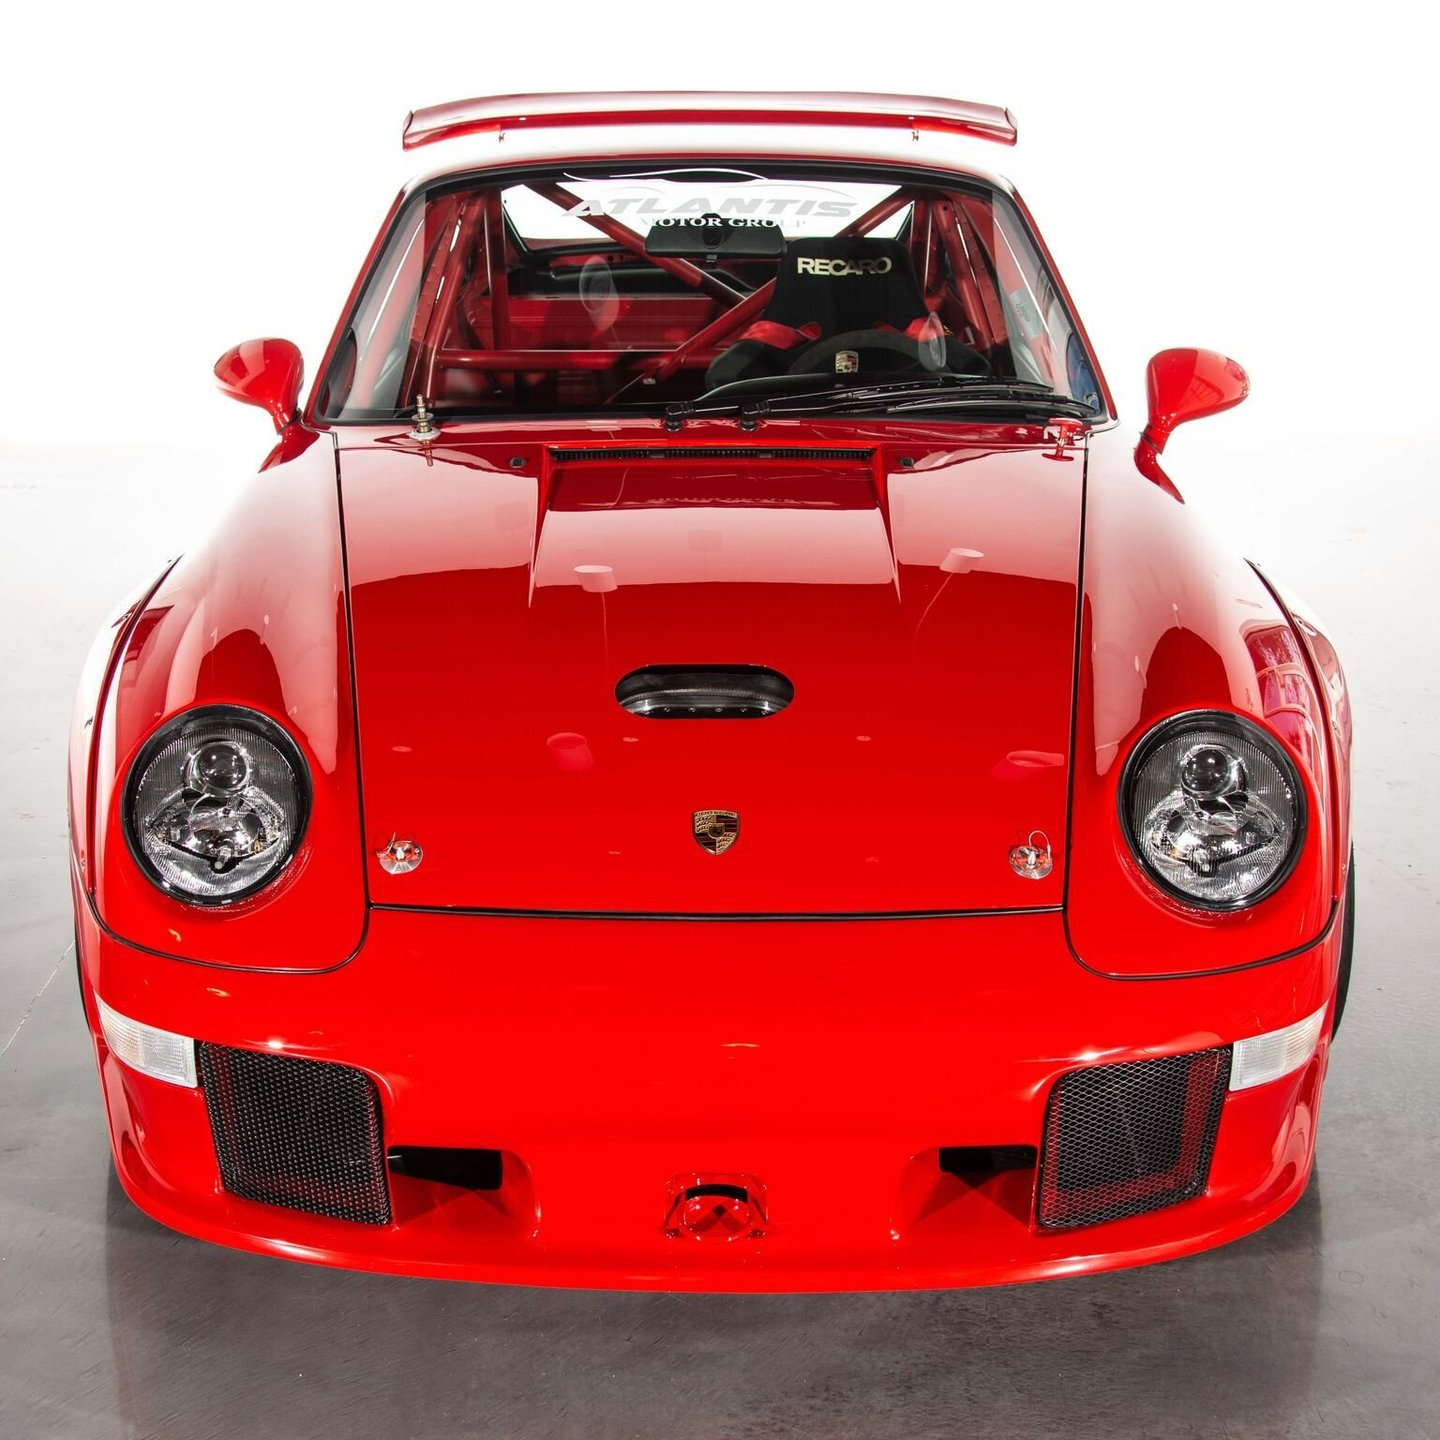 1996 Porsche 911 GT2 Race Car For Sale #49970